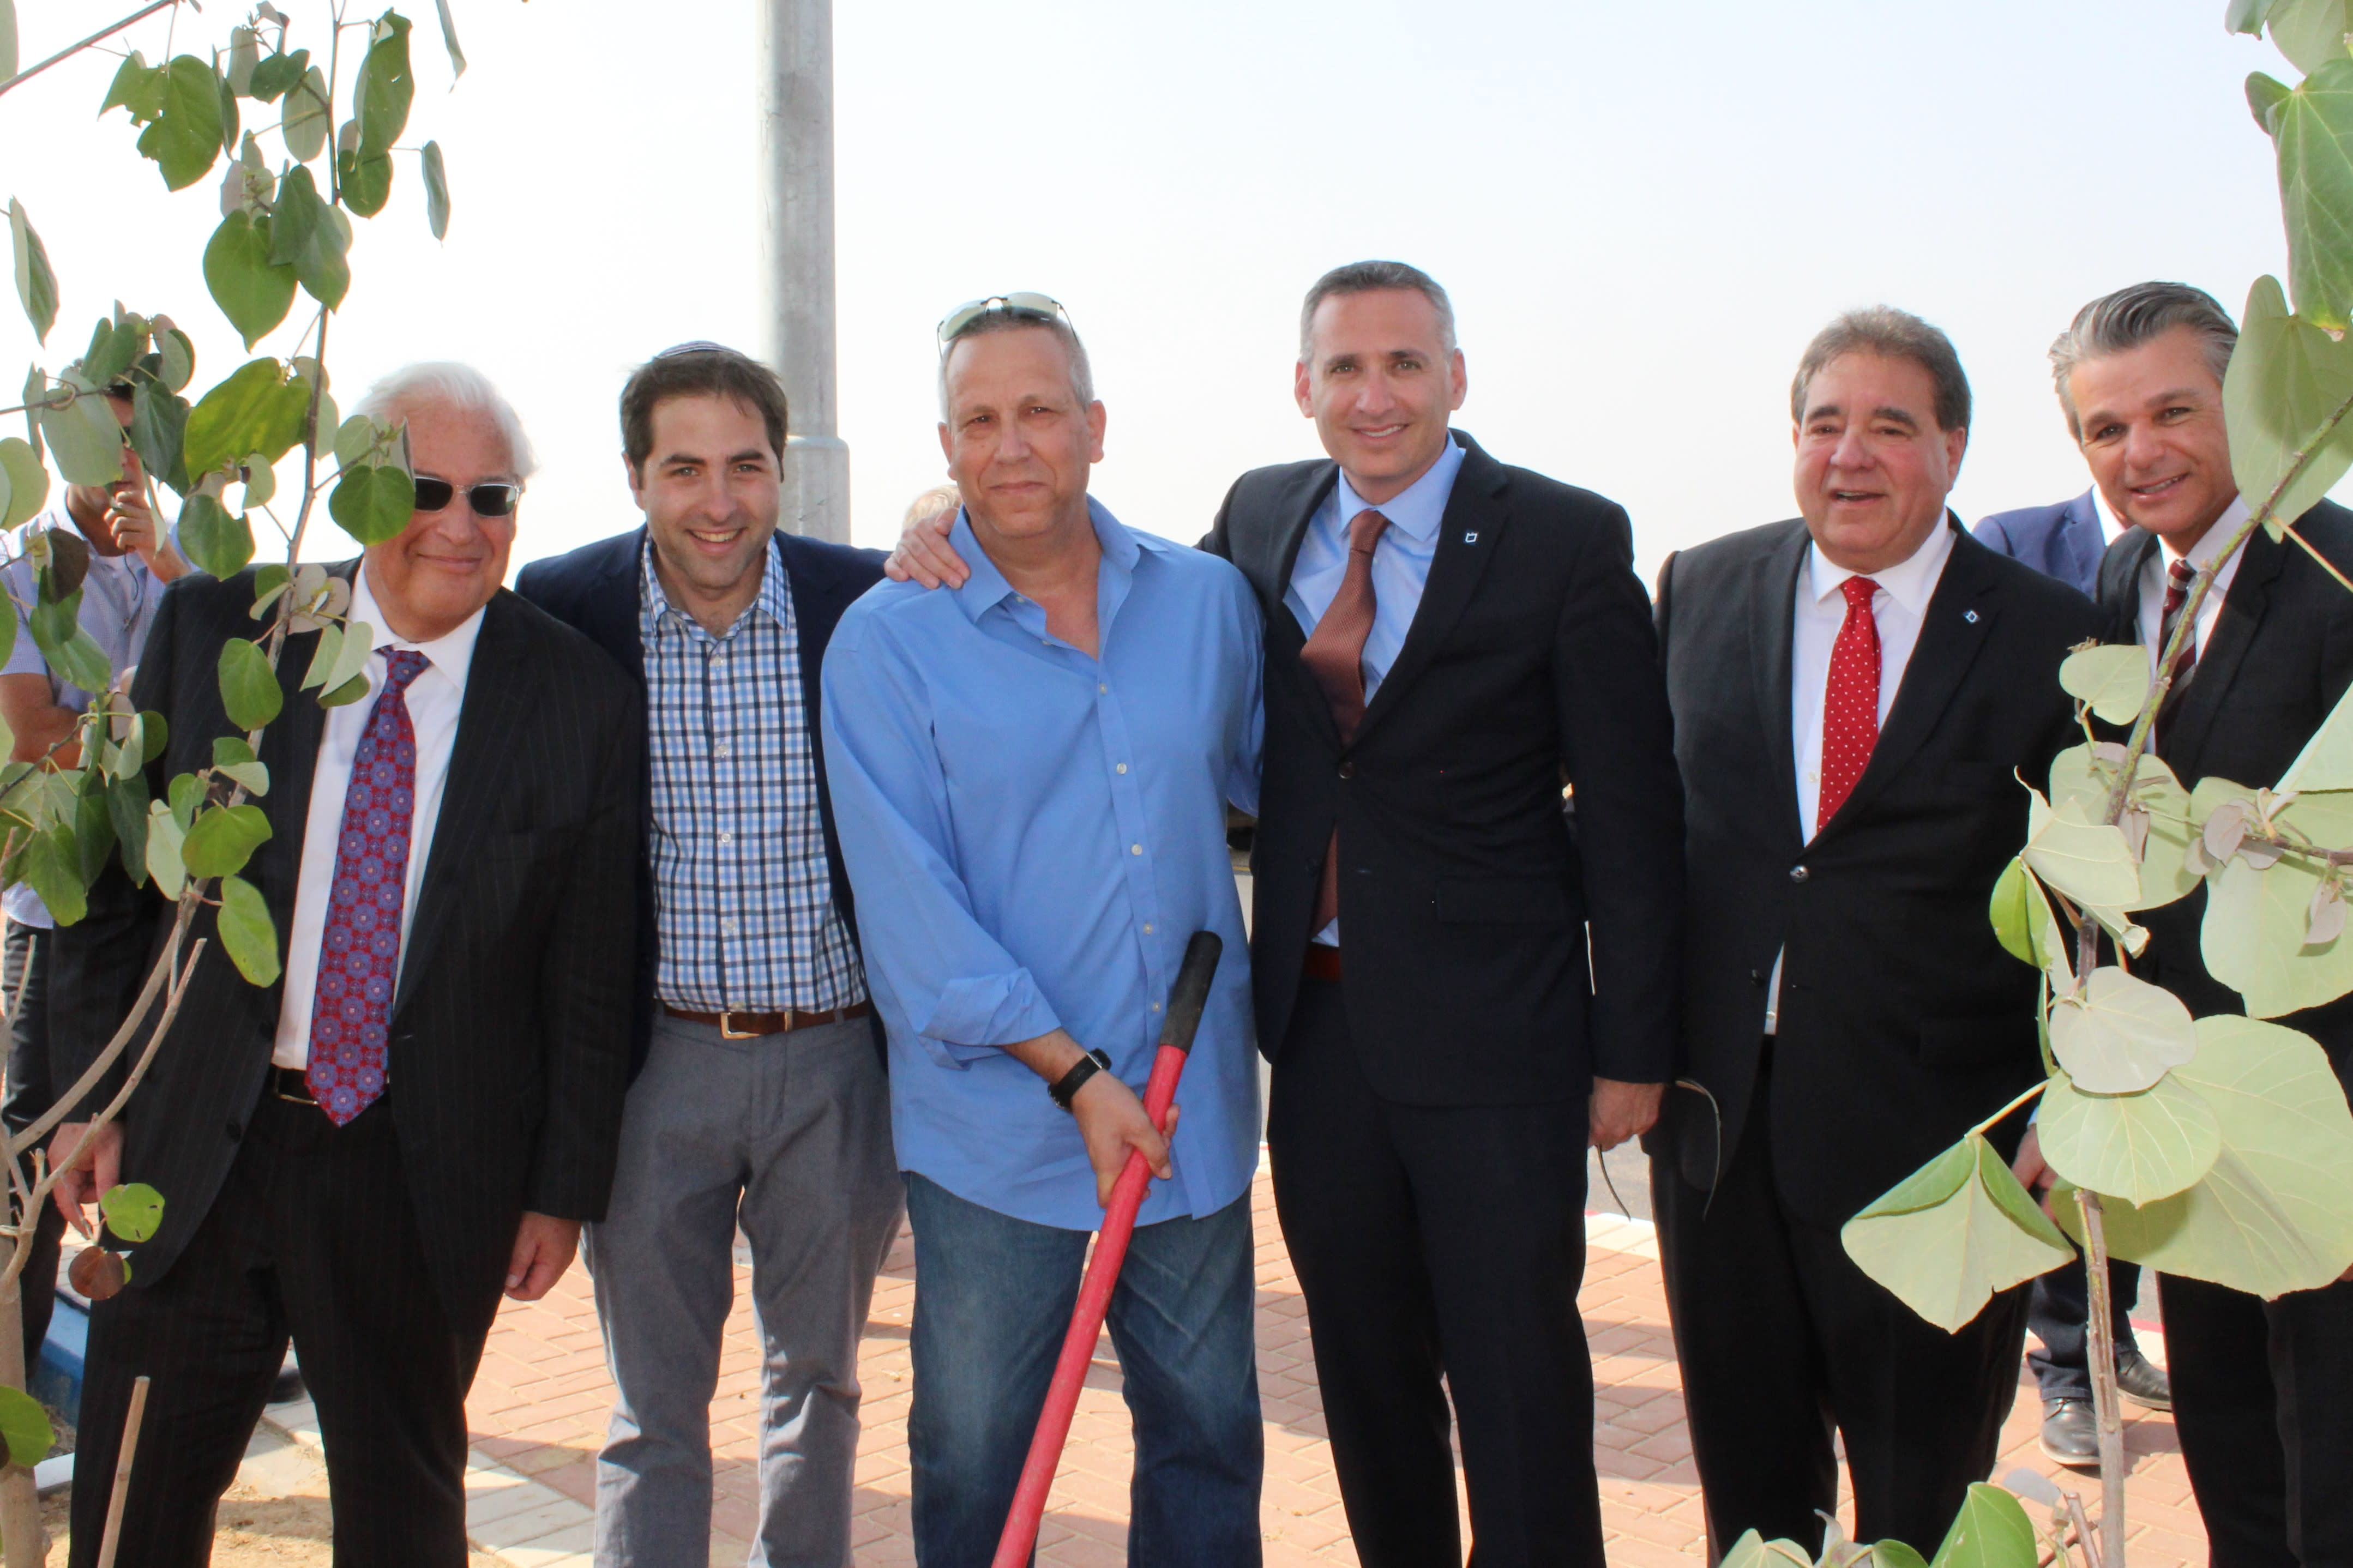 US Ambassador David Friedman, JNF Project Coordinator Yoel Rosby, Eshkol Mayor Gadi Yarkoni, JNF Chief Israel Officer Eric Michaelson, JNF CEO Russell Robinson and Pastor Jentezen Franklin plant trees outside the new Playschool, symbolic of the strength and growth of the Eshkol community. (Credit: JNF-USA)